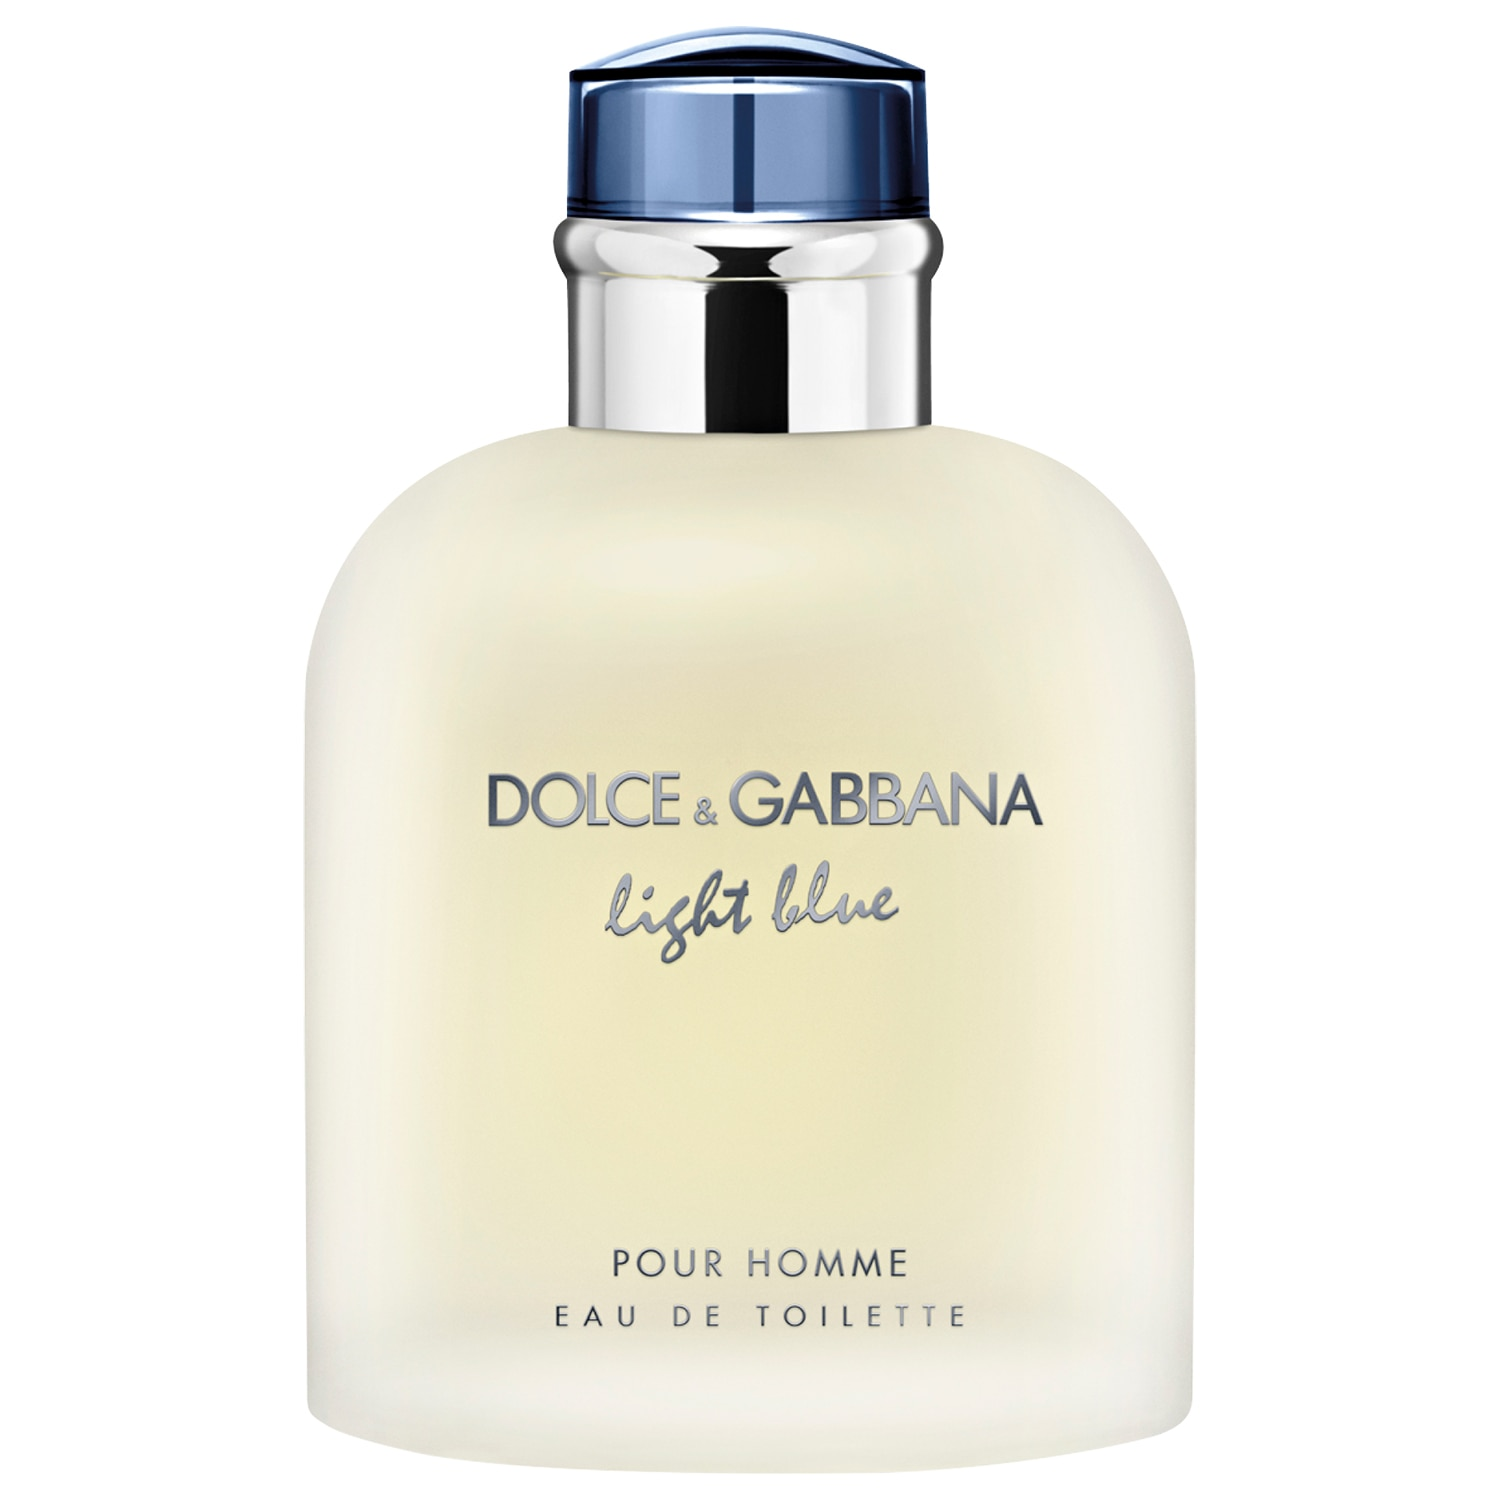 LIGHT BLUE HOMME EAU DE TOILETTE 125ML